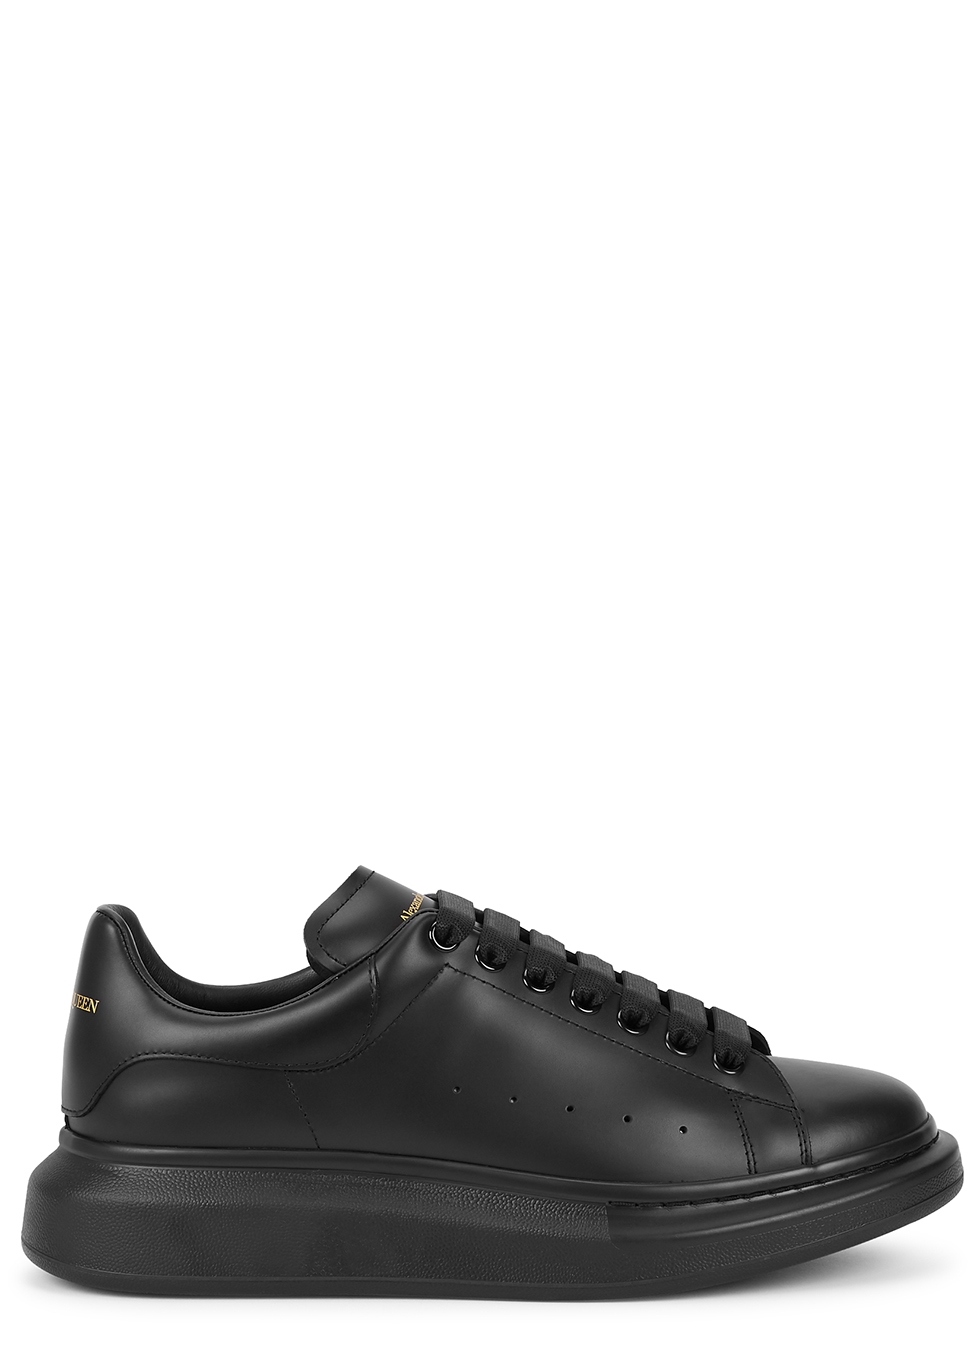 Larry black leather sneakers